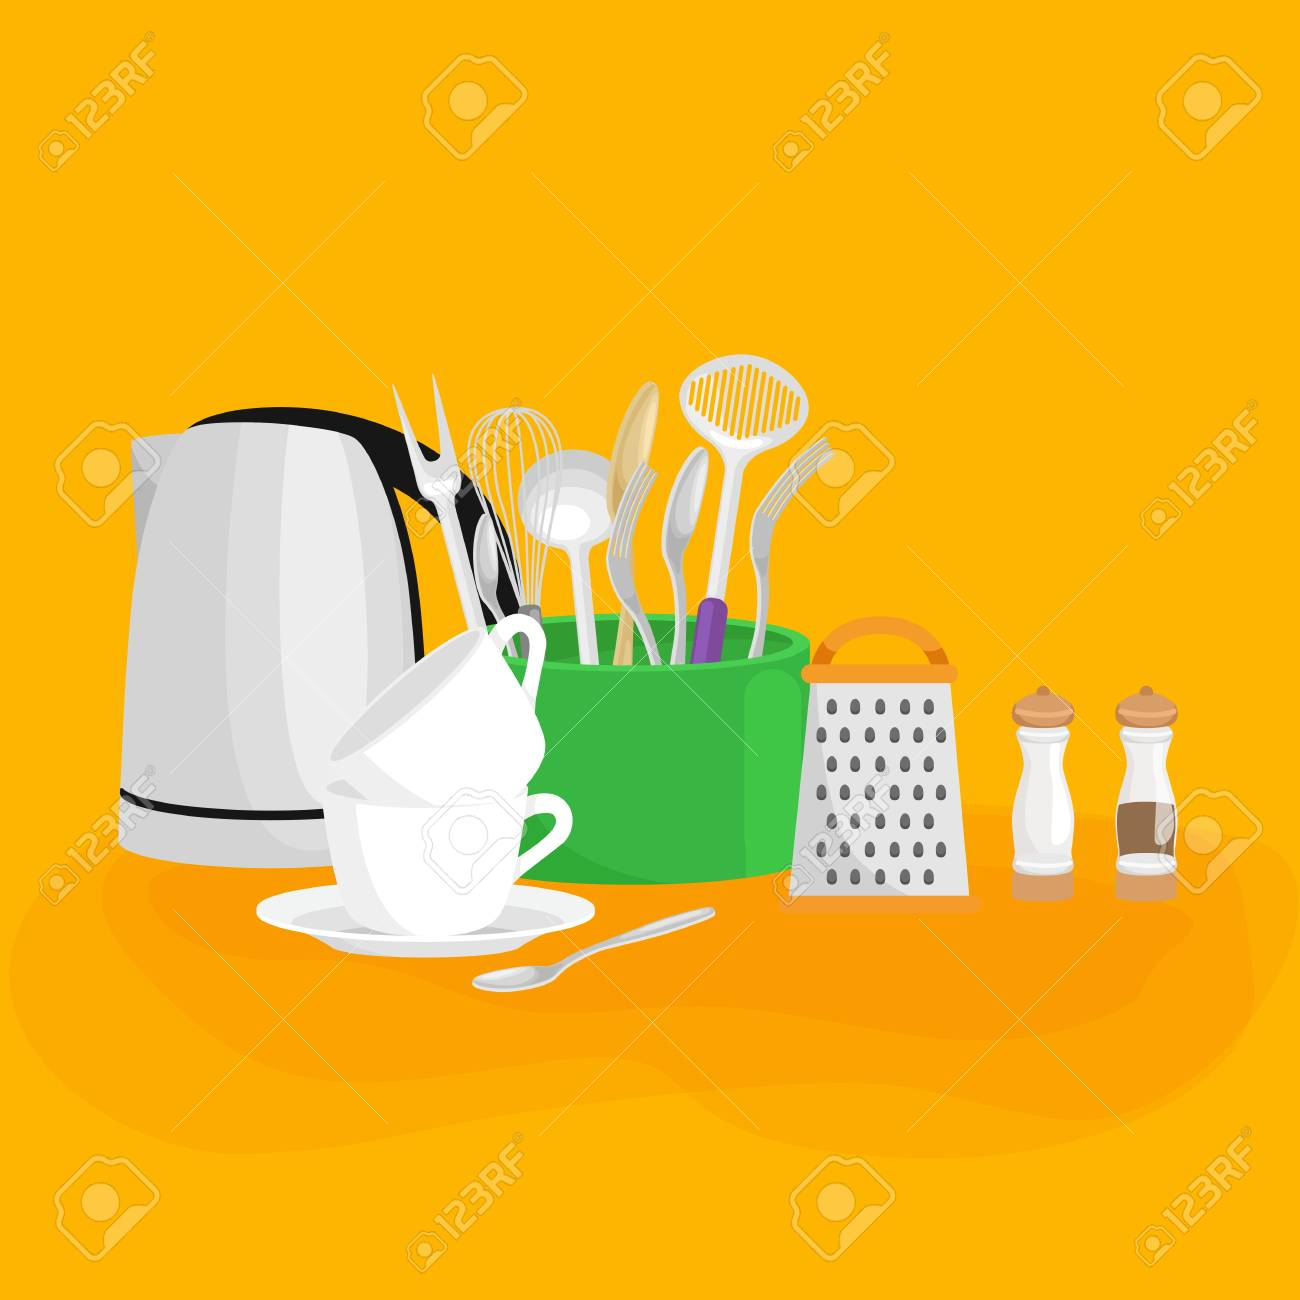 Food And Cooking Banner Set With Kitchenware Utensils Kitchen Royalty Free Cliparts Vectors And Stock Illustration Image 58994707